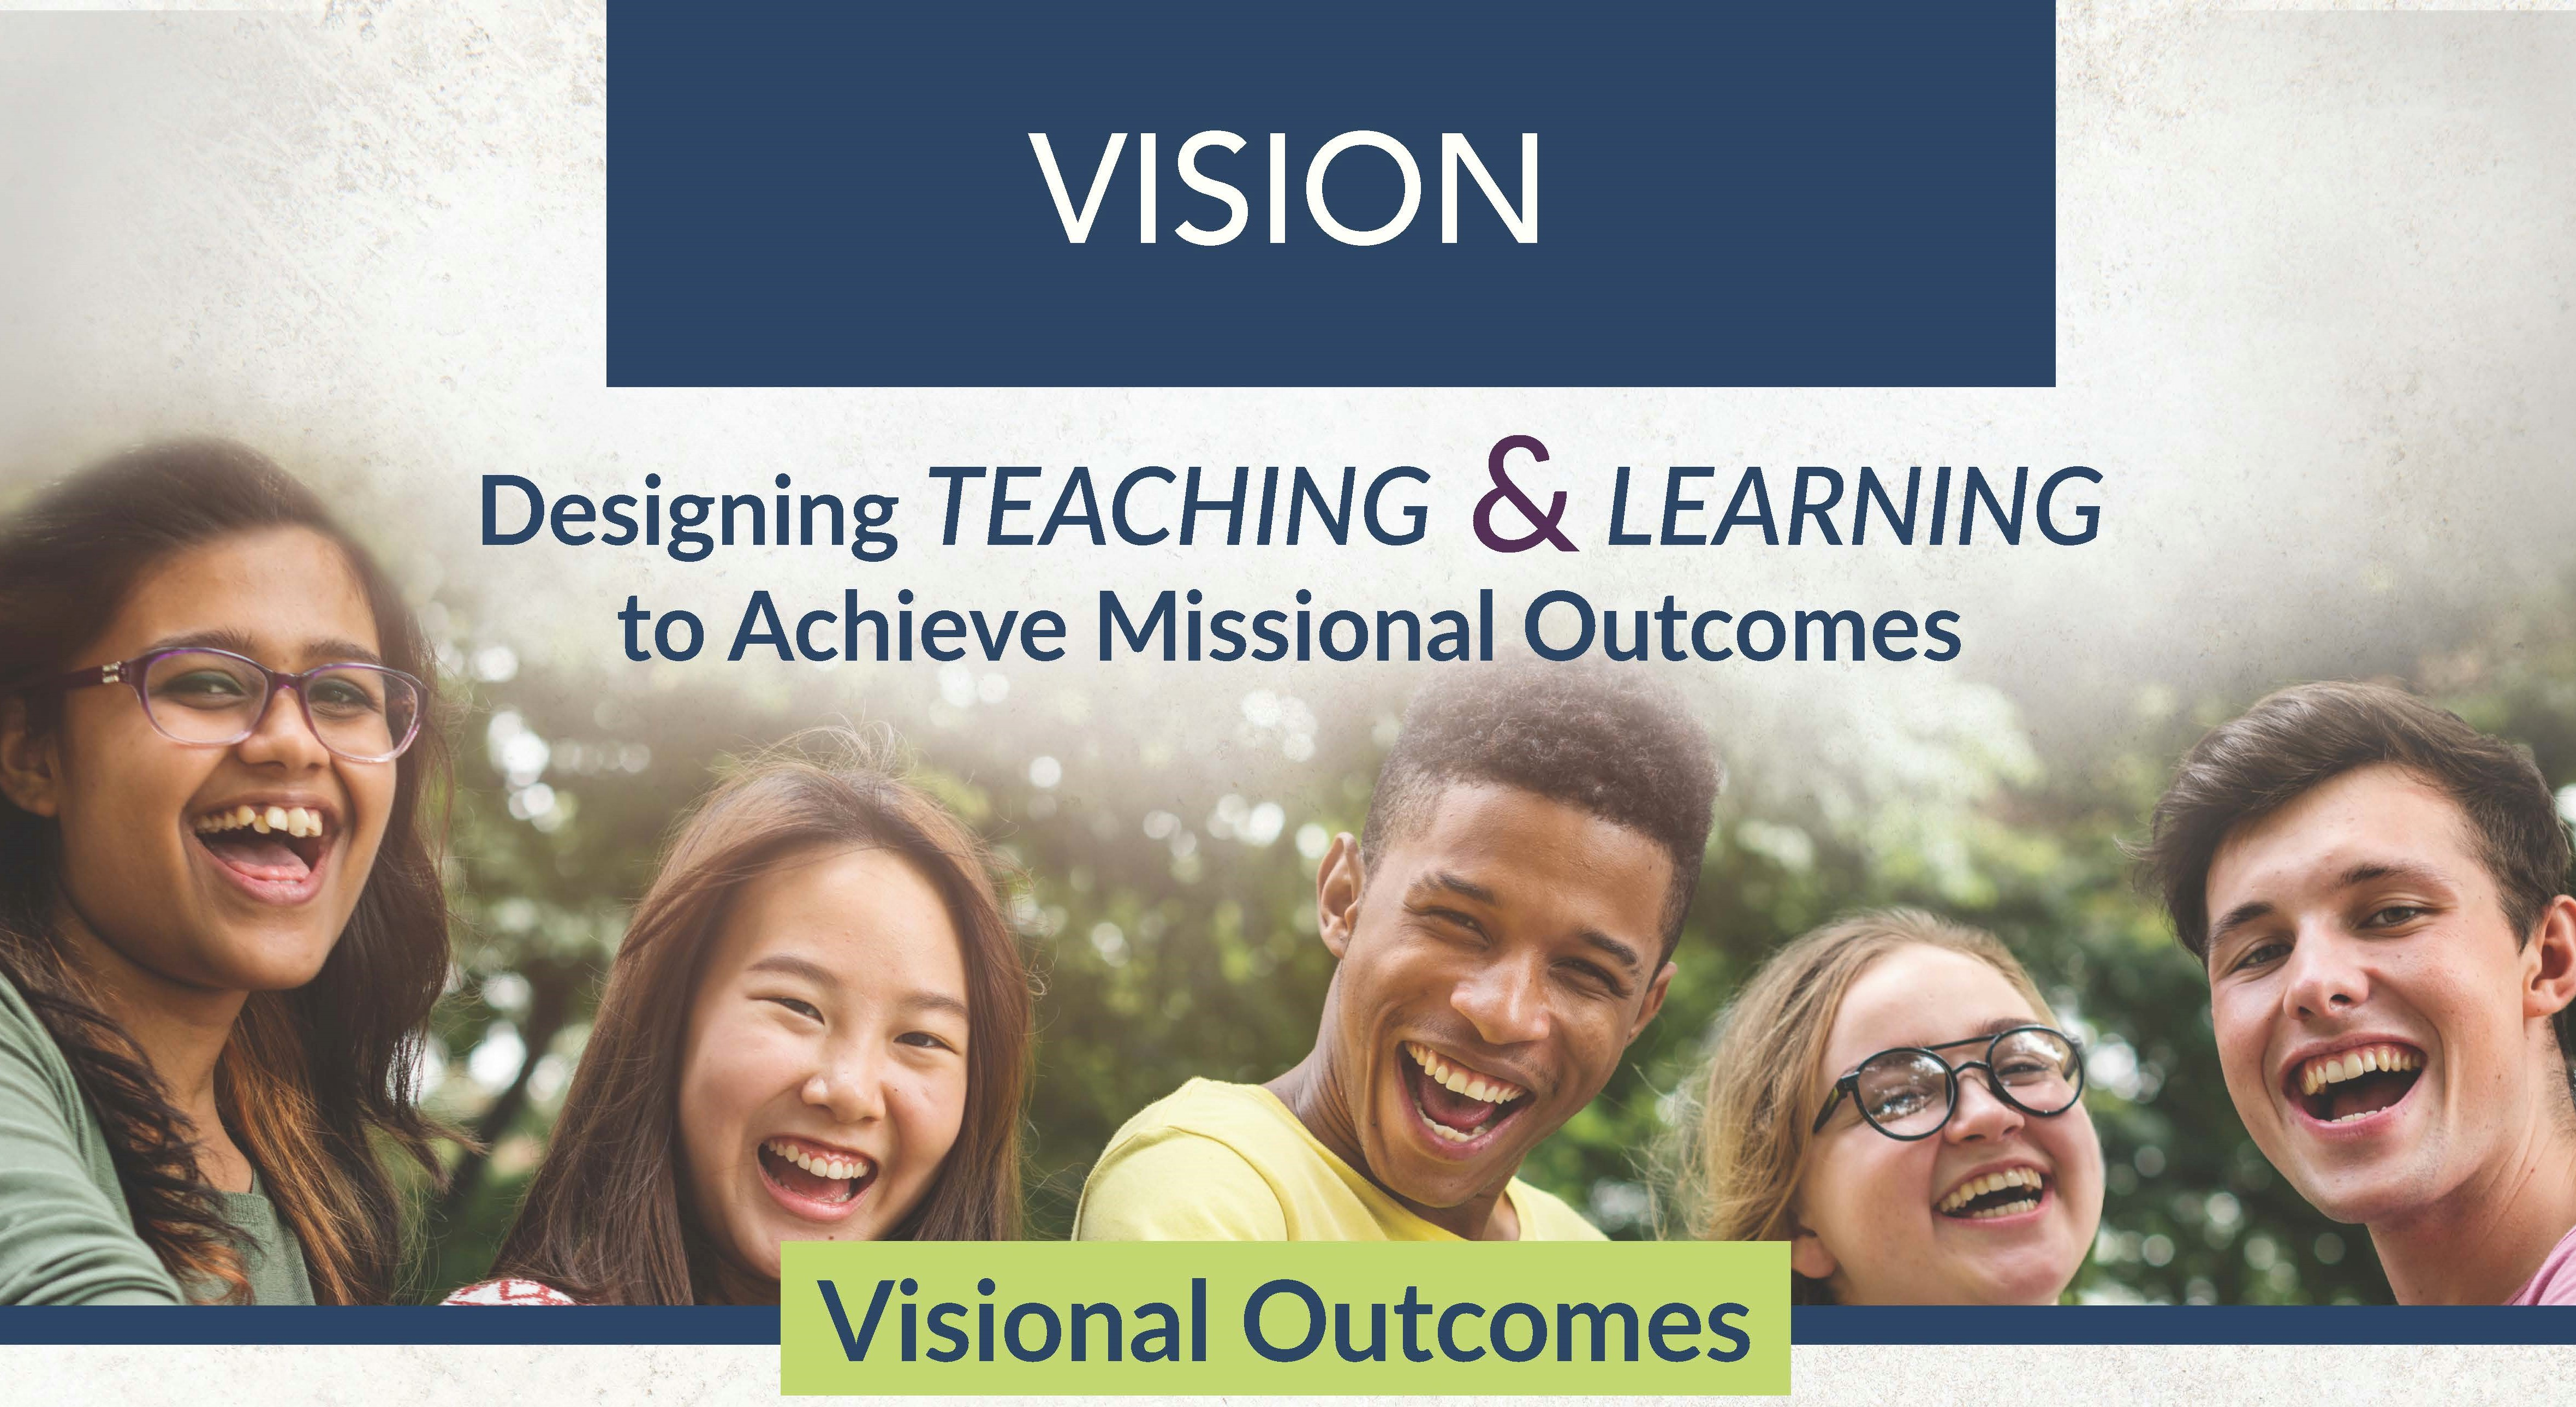 19 VISION FOR EDUCATION IN THE SOUTHWESTERN UNION